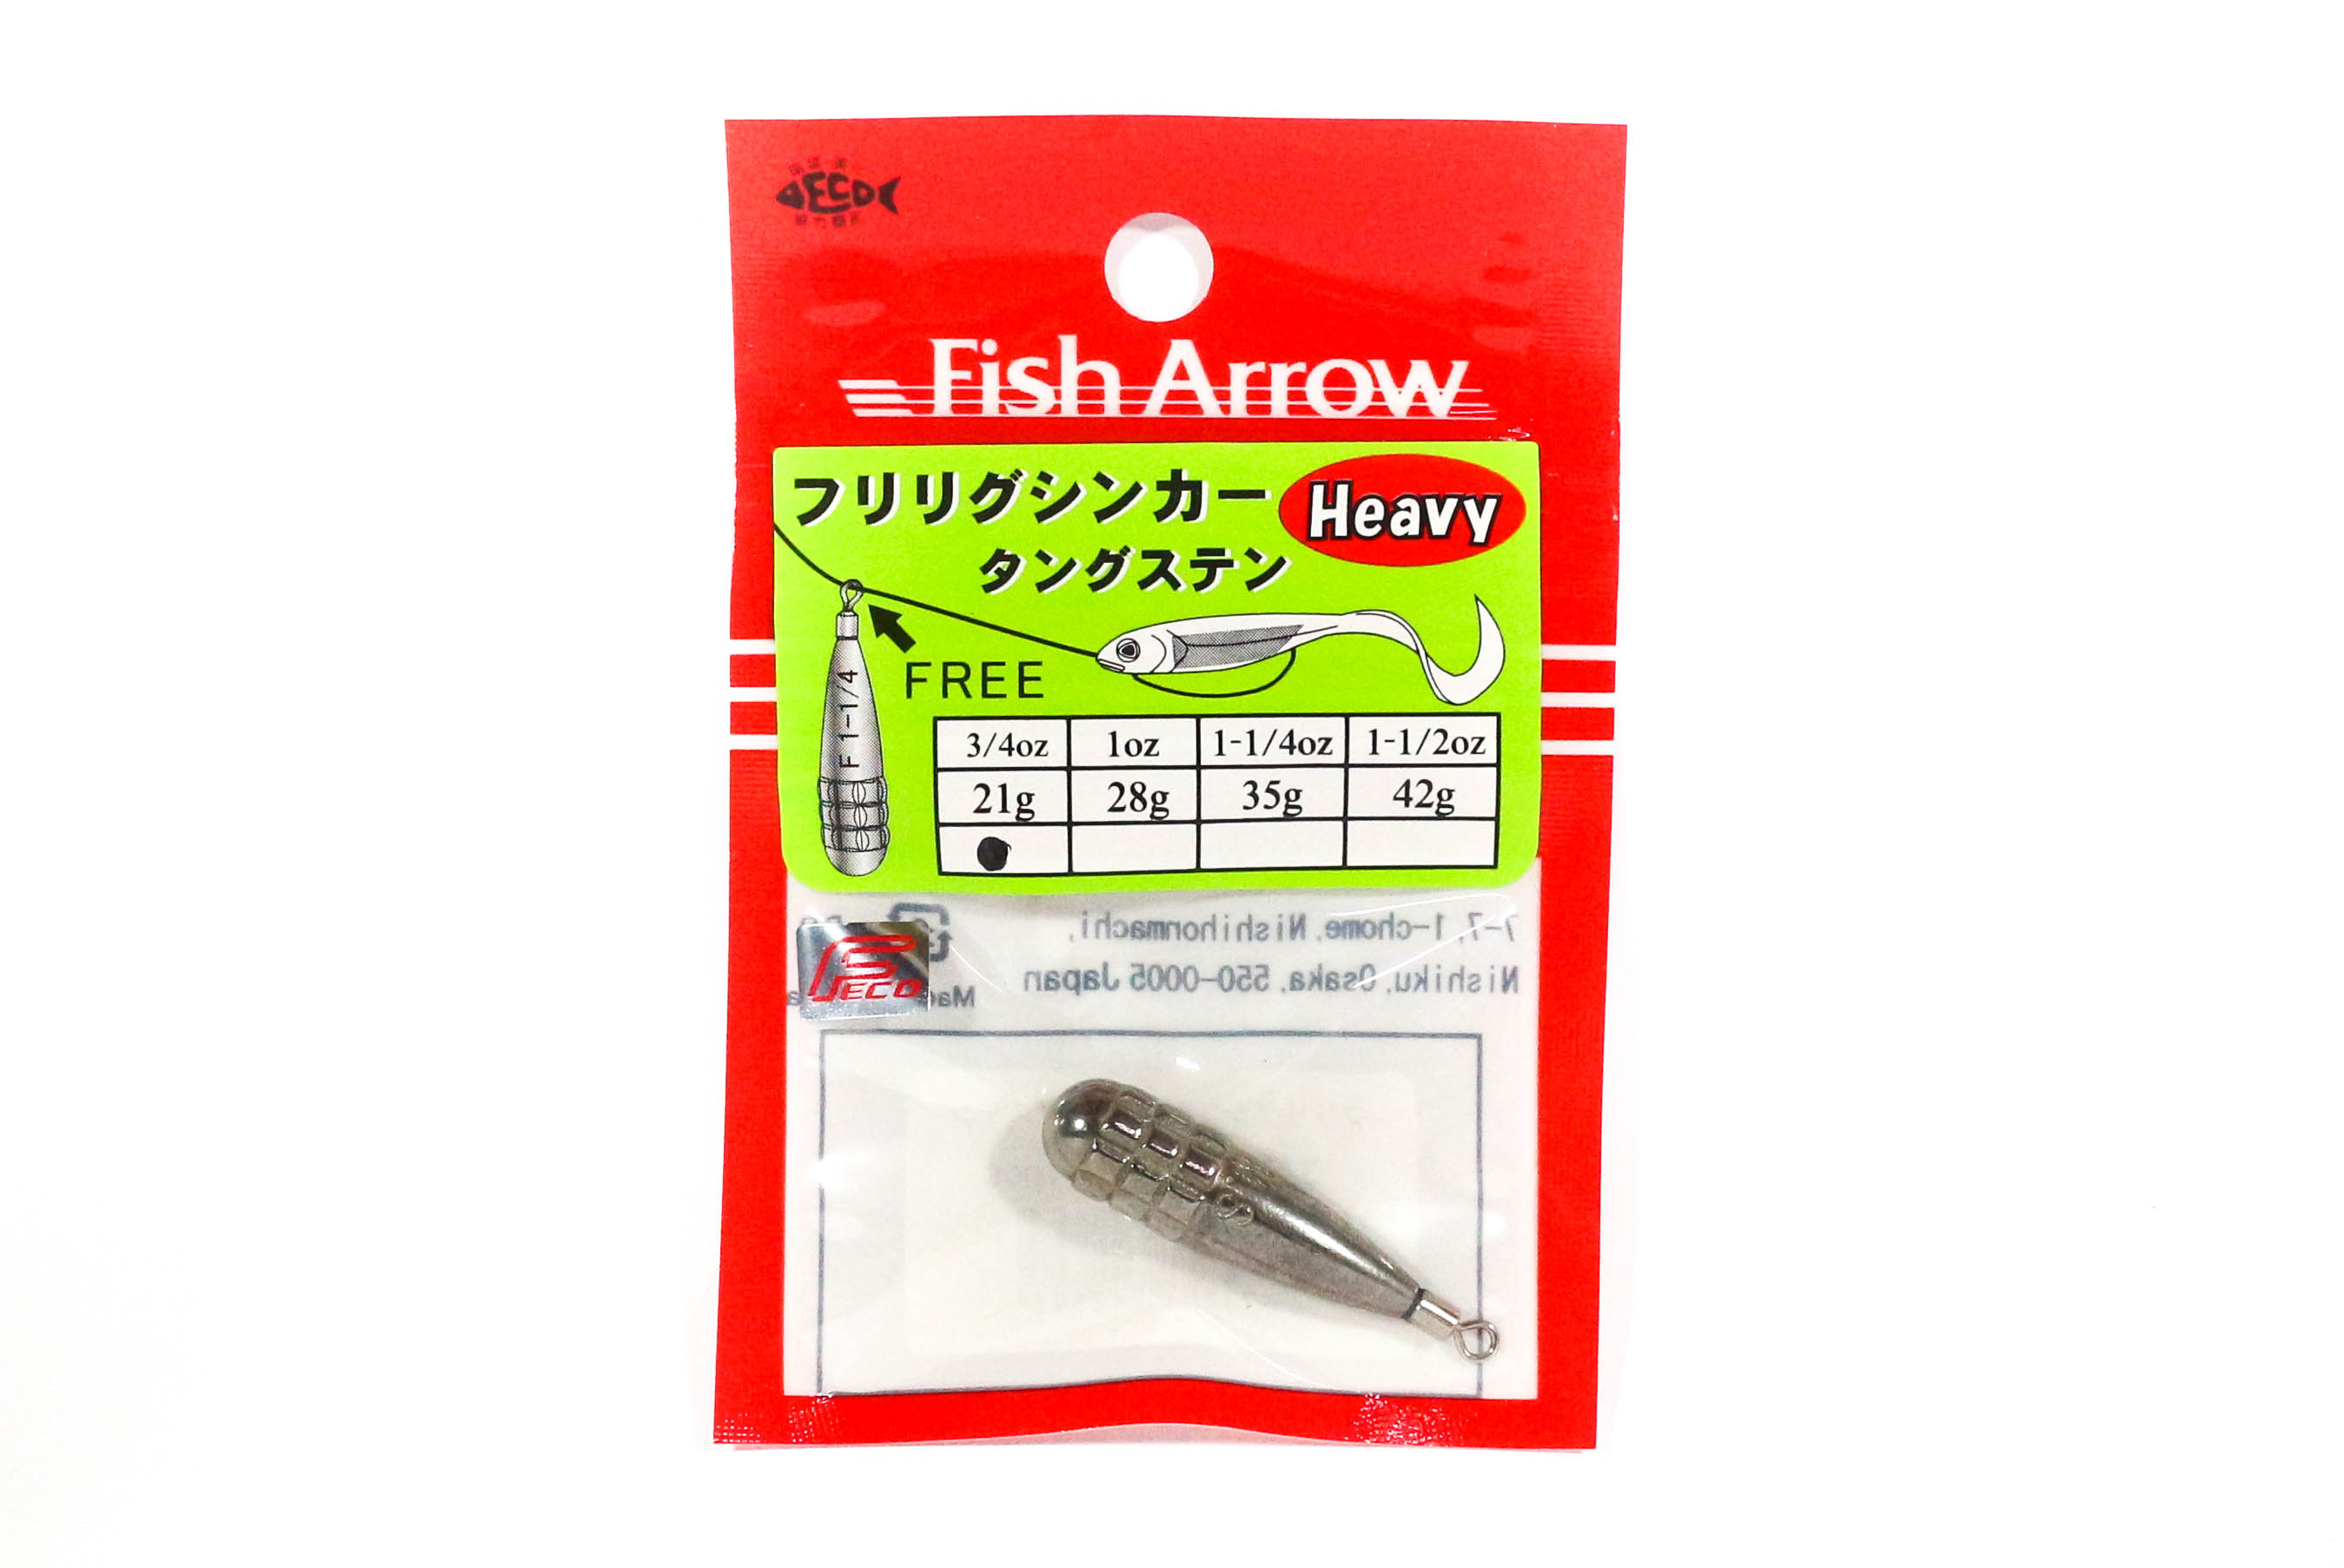 Fish Arrow Free Rig Tungster Sinker 3/4 oz 1 piece per pack (2695)